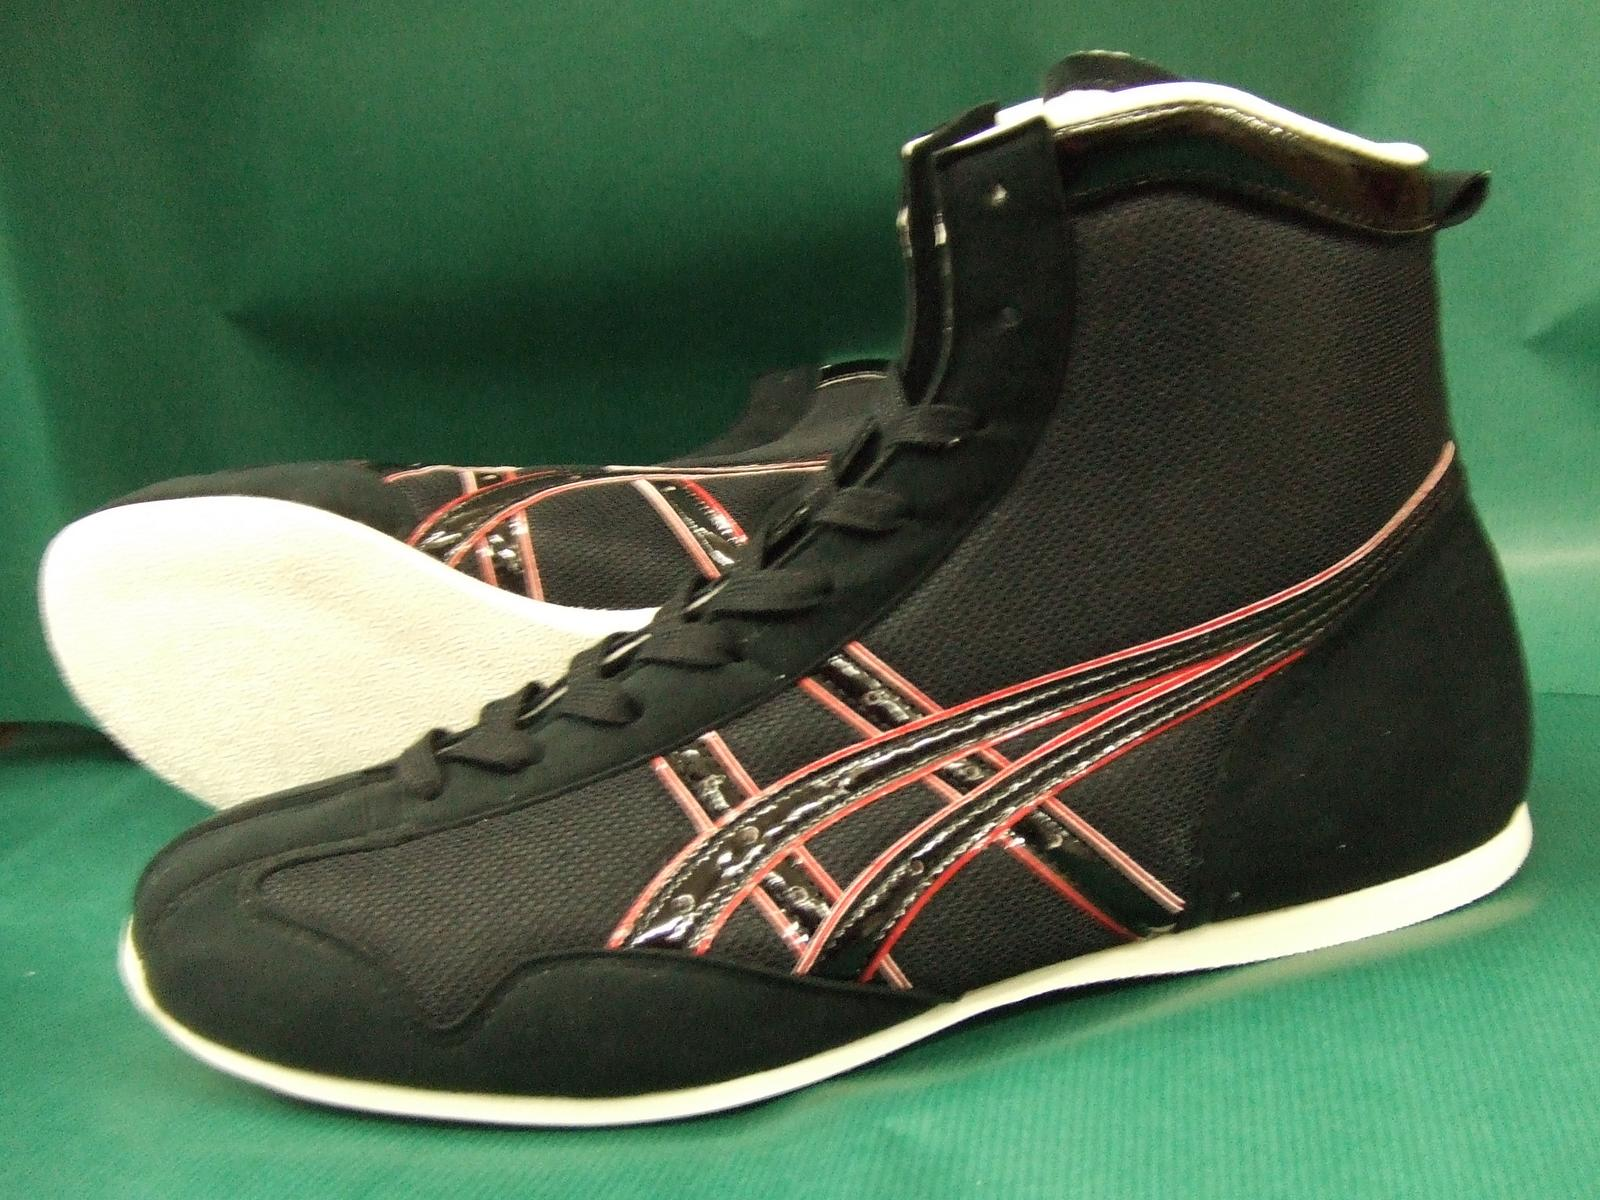 アシックスショート boxing shoes America-ya original color black x black x Red